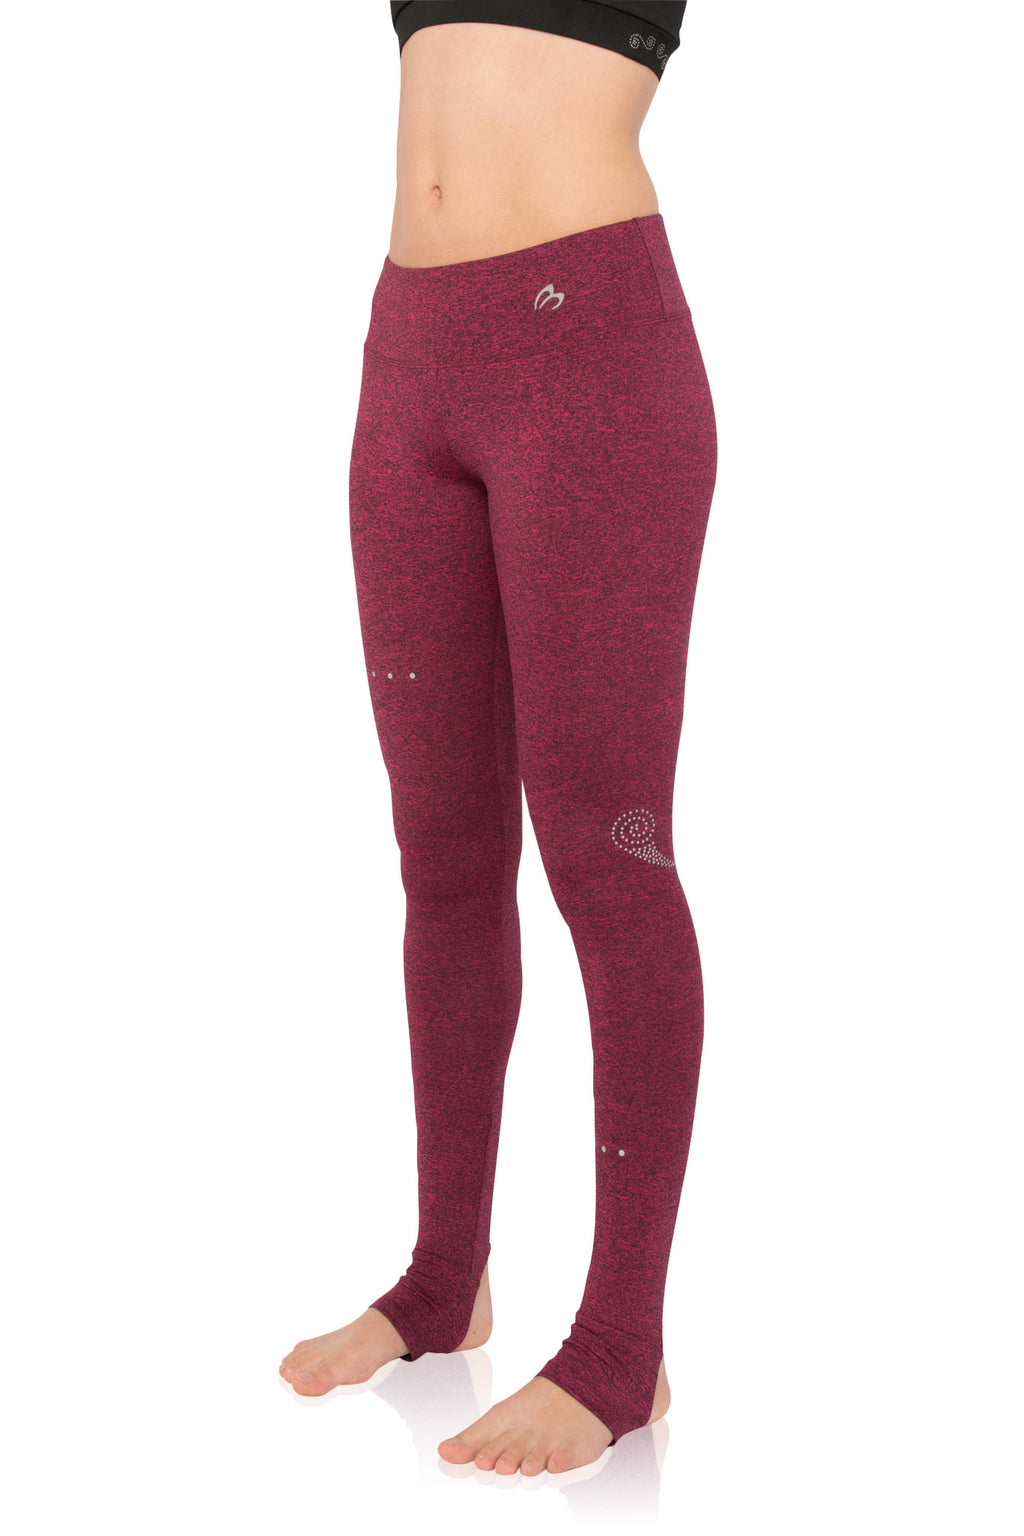 Heather Ruby Leggings